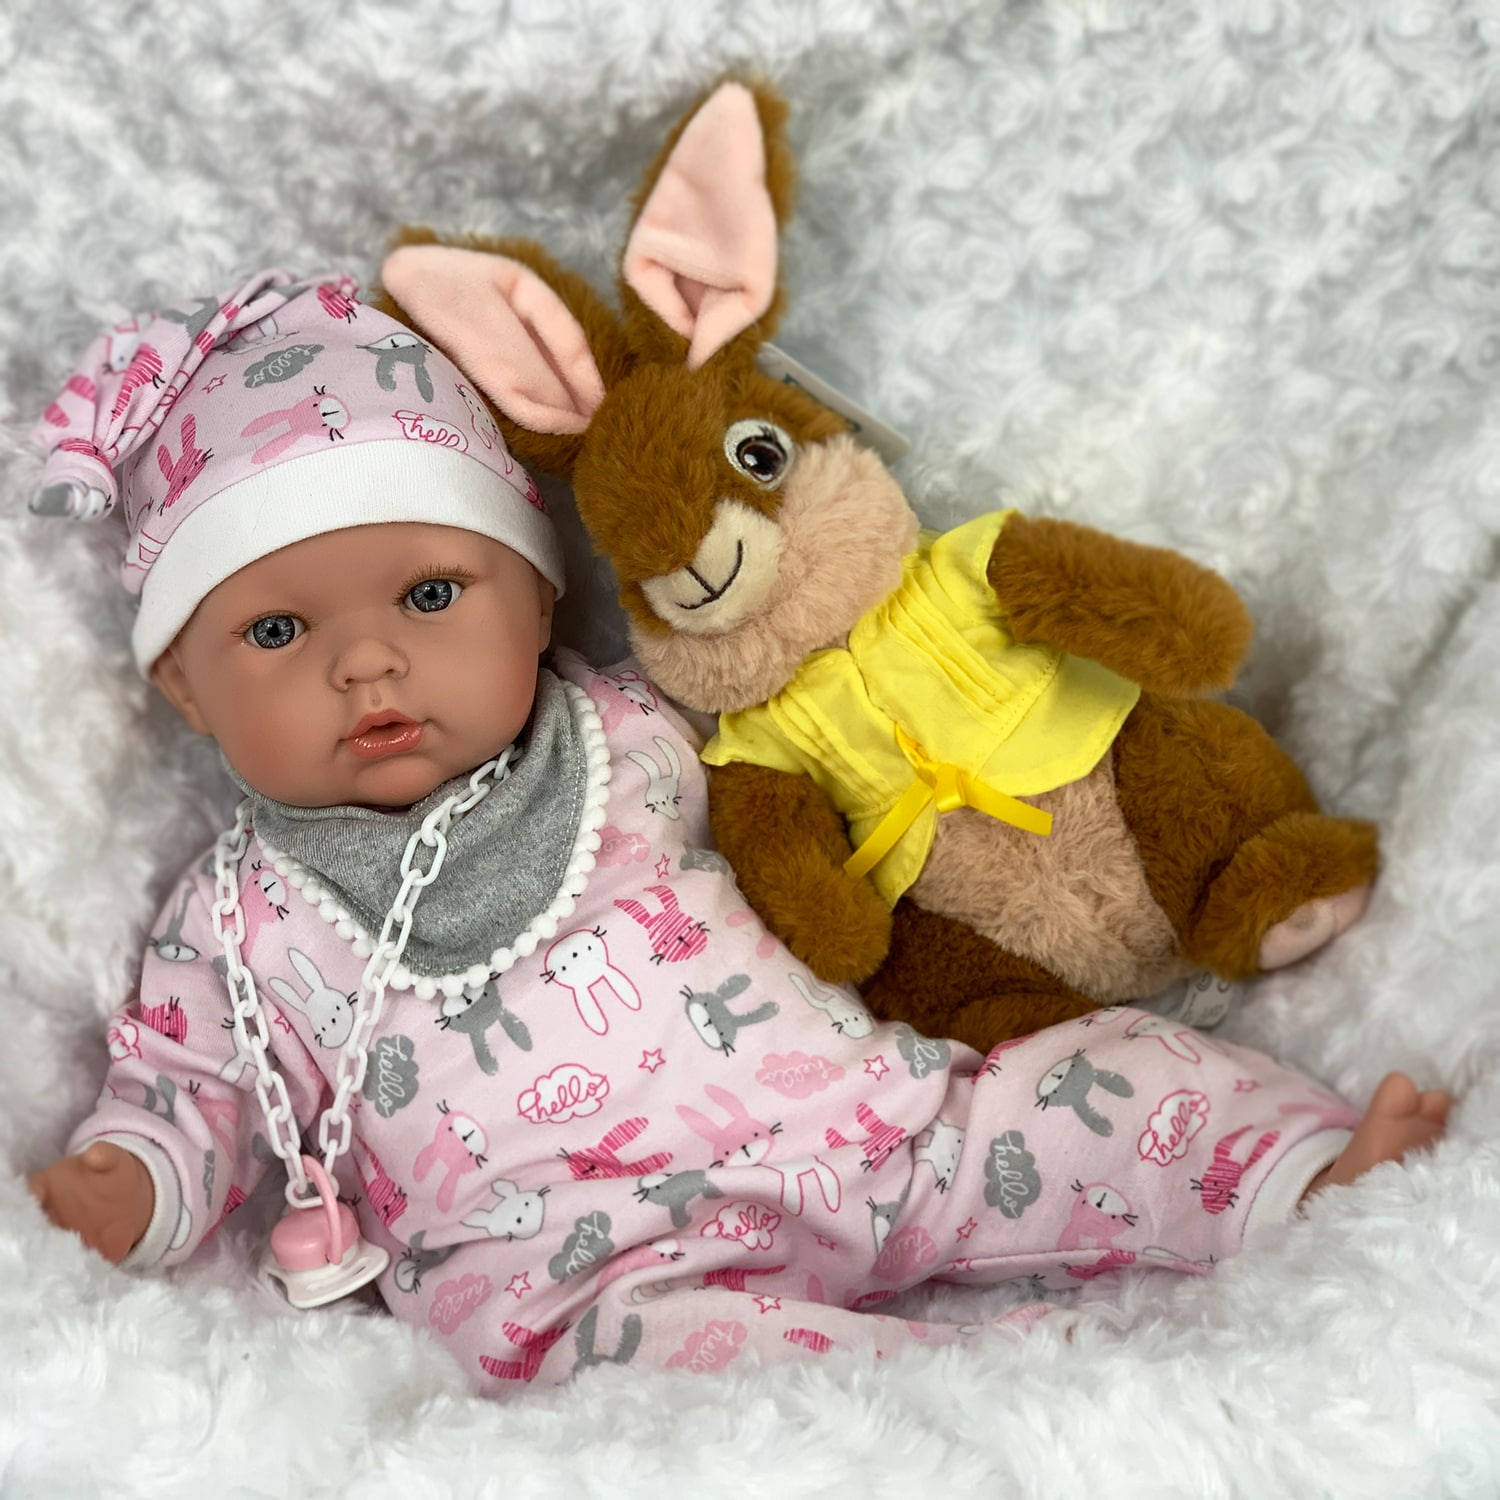 Anna-Ella and Rabbit Play Doll Mary Shortle